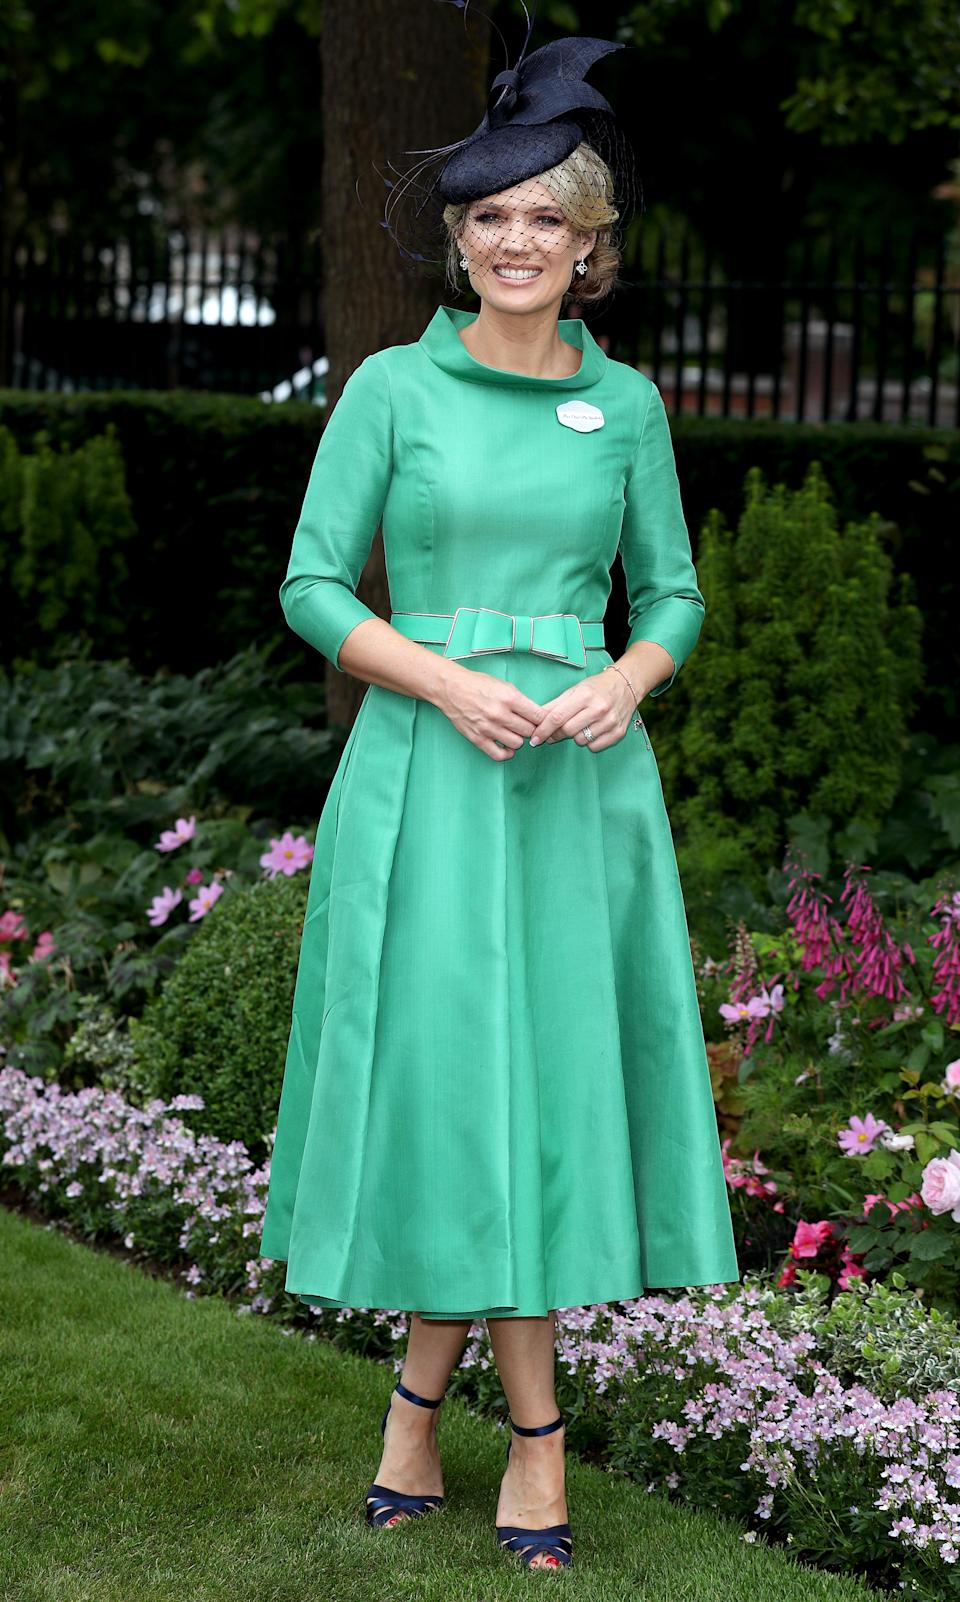 <p>We're big fans of Charlotte's classic, midi dress and navy hat combo. Understated and elegant. <em>[Photo: PA]</em> </p>